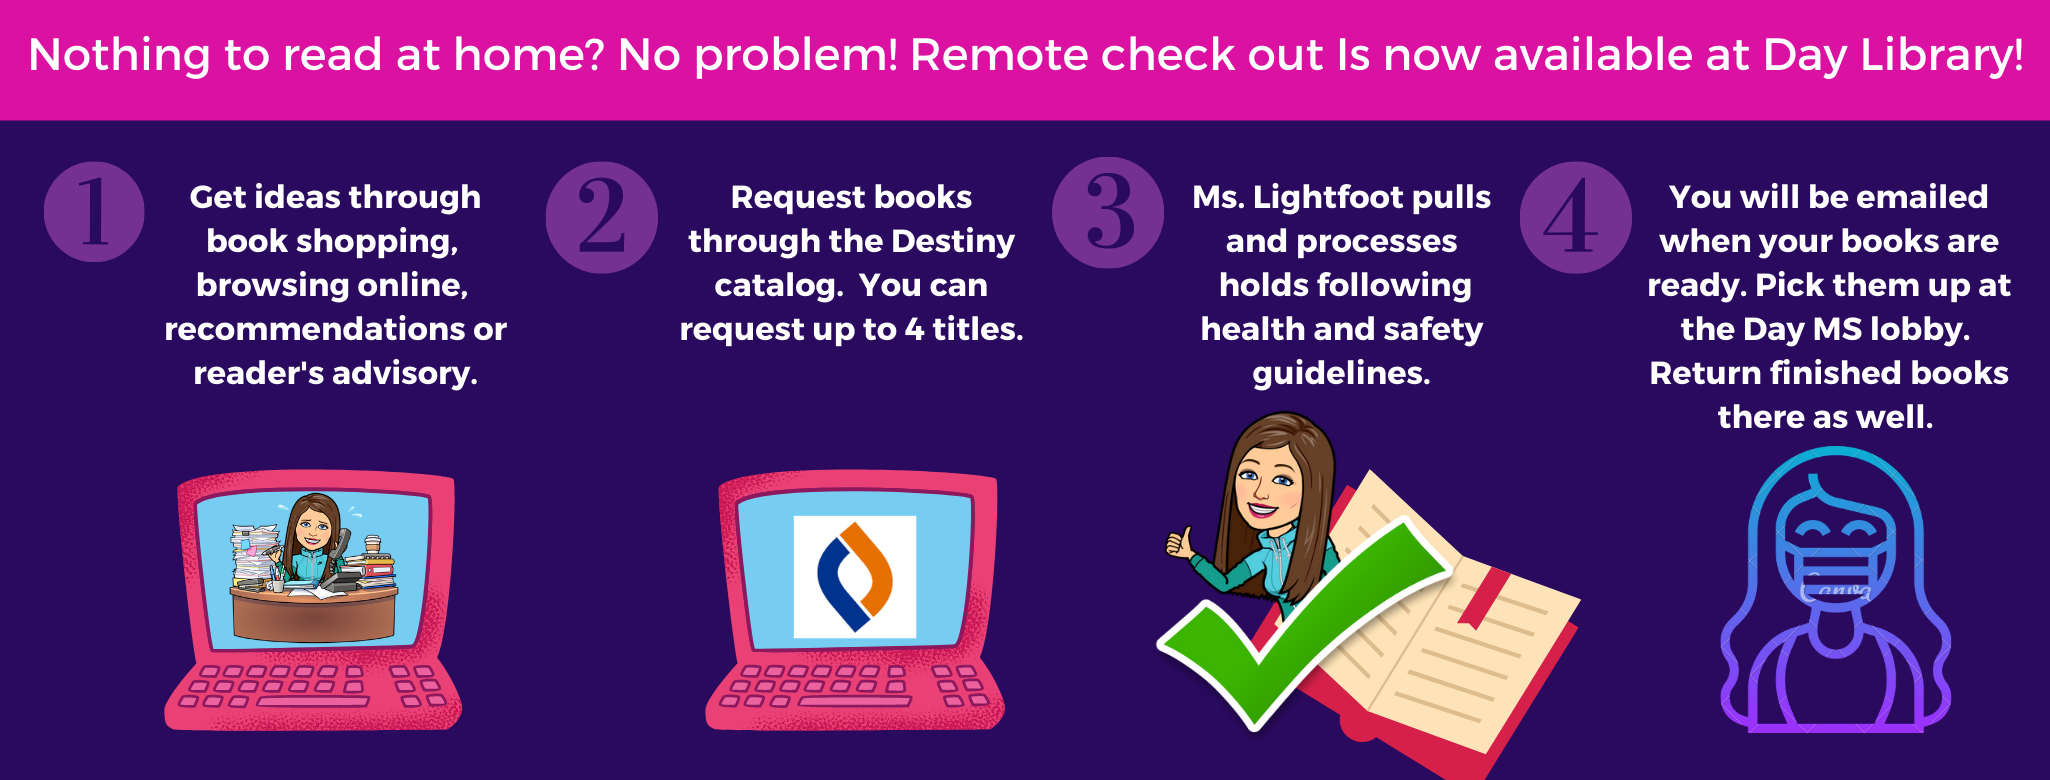 directions for remote checkout